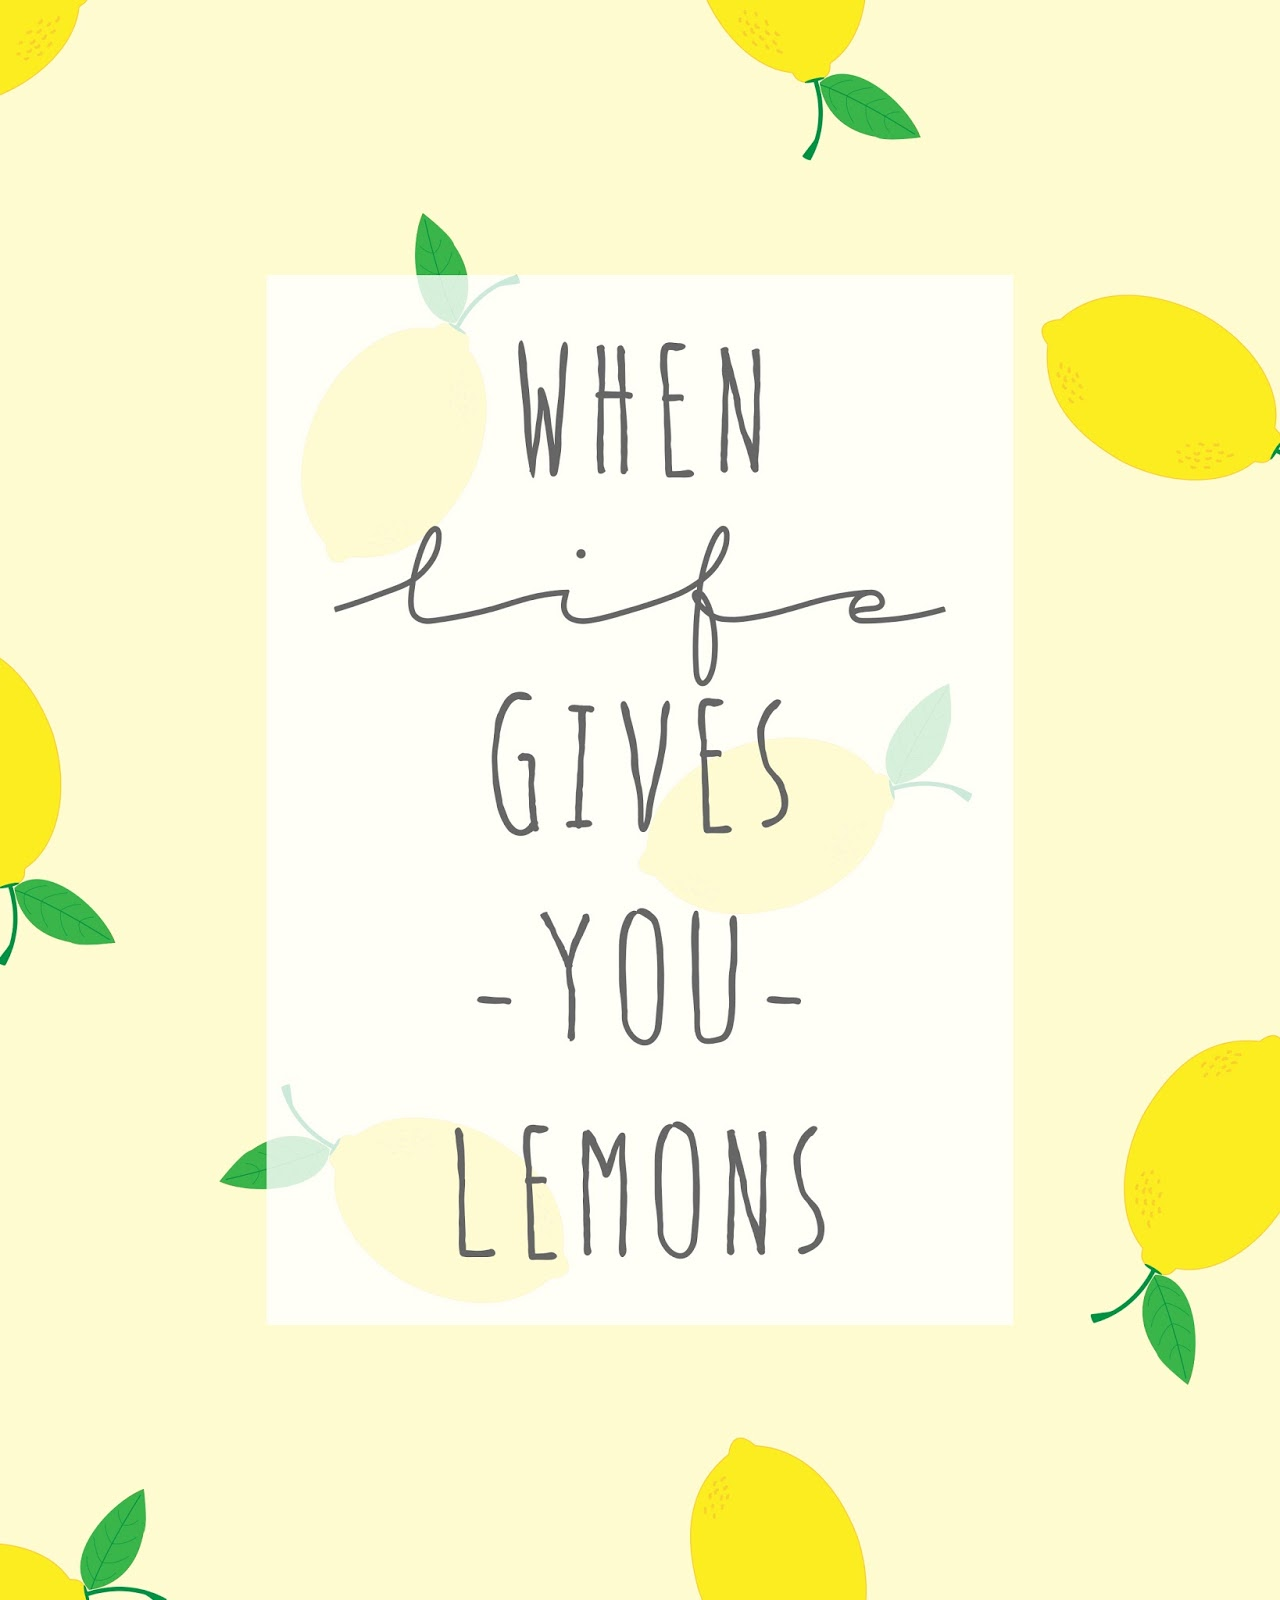 When life gives you lemons....